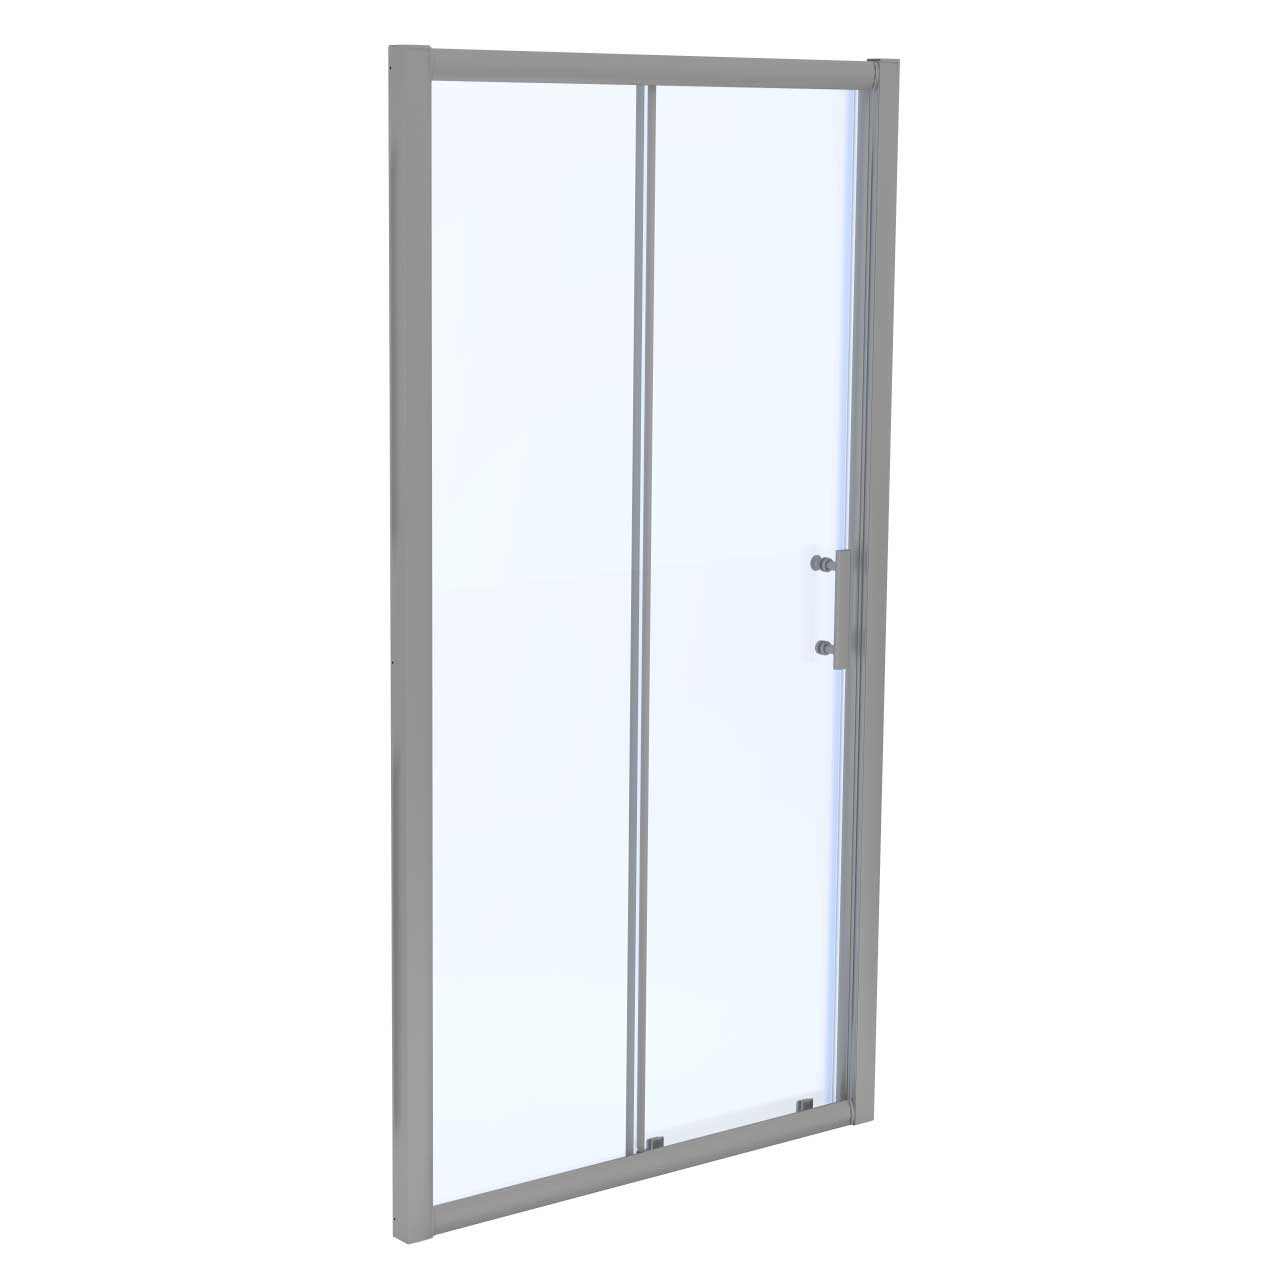 Series 8 1000mm x 1000mm Sliding Door Shower Enclosure